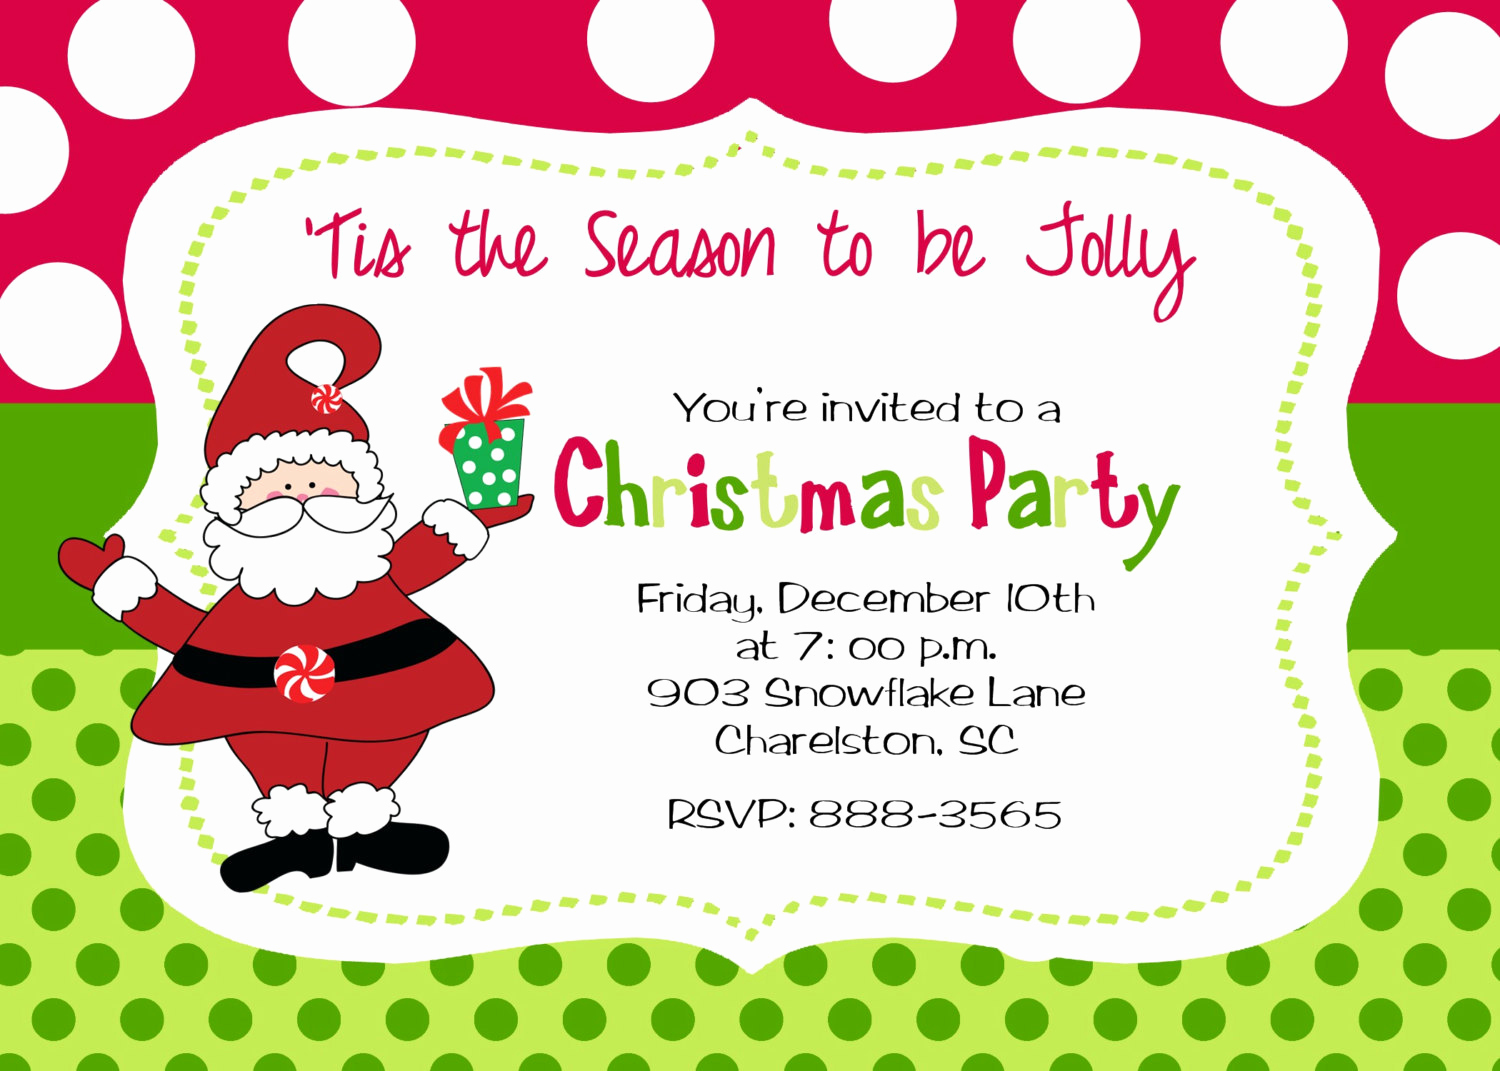 Christmas Party Invitation Template Best Of Christmas Party Invitation